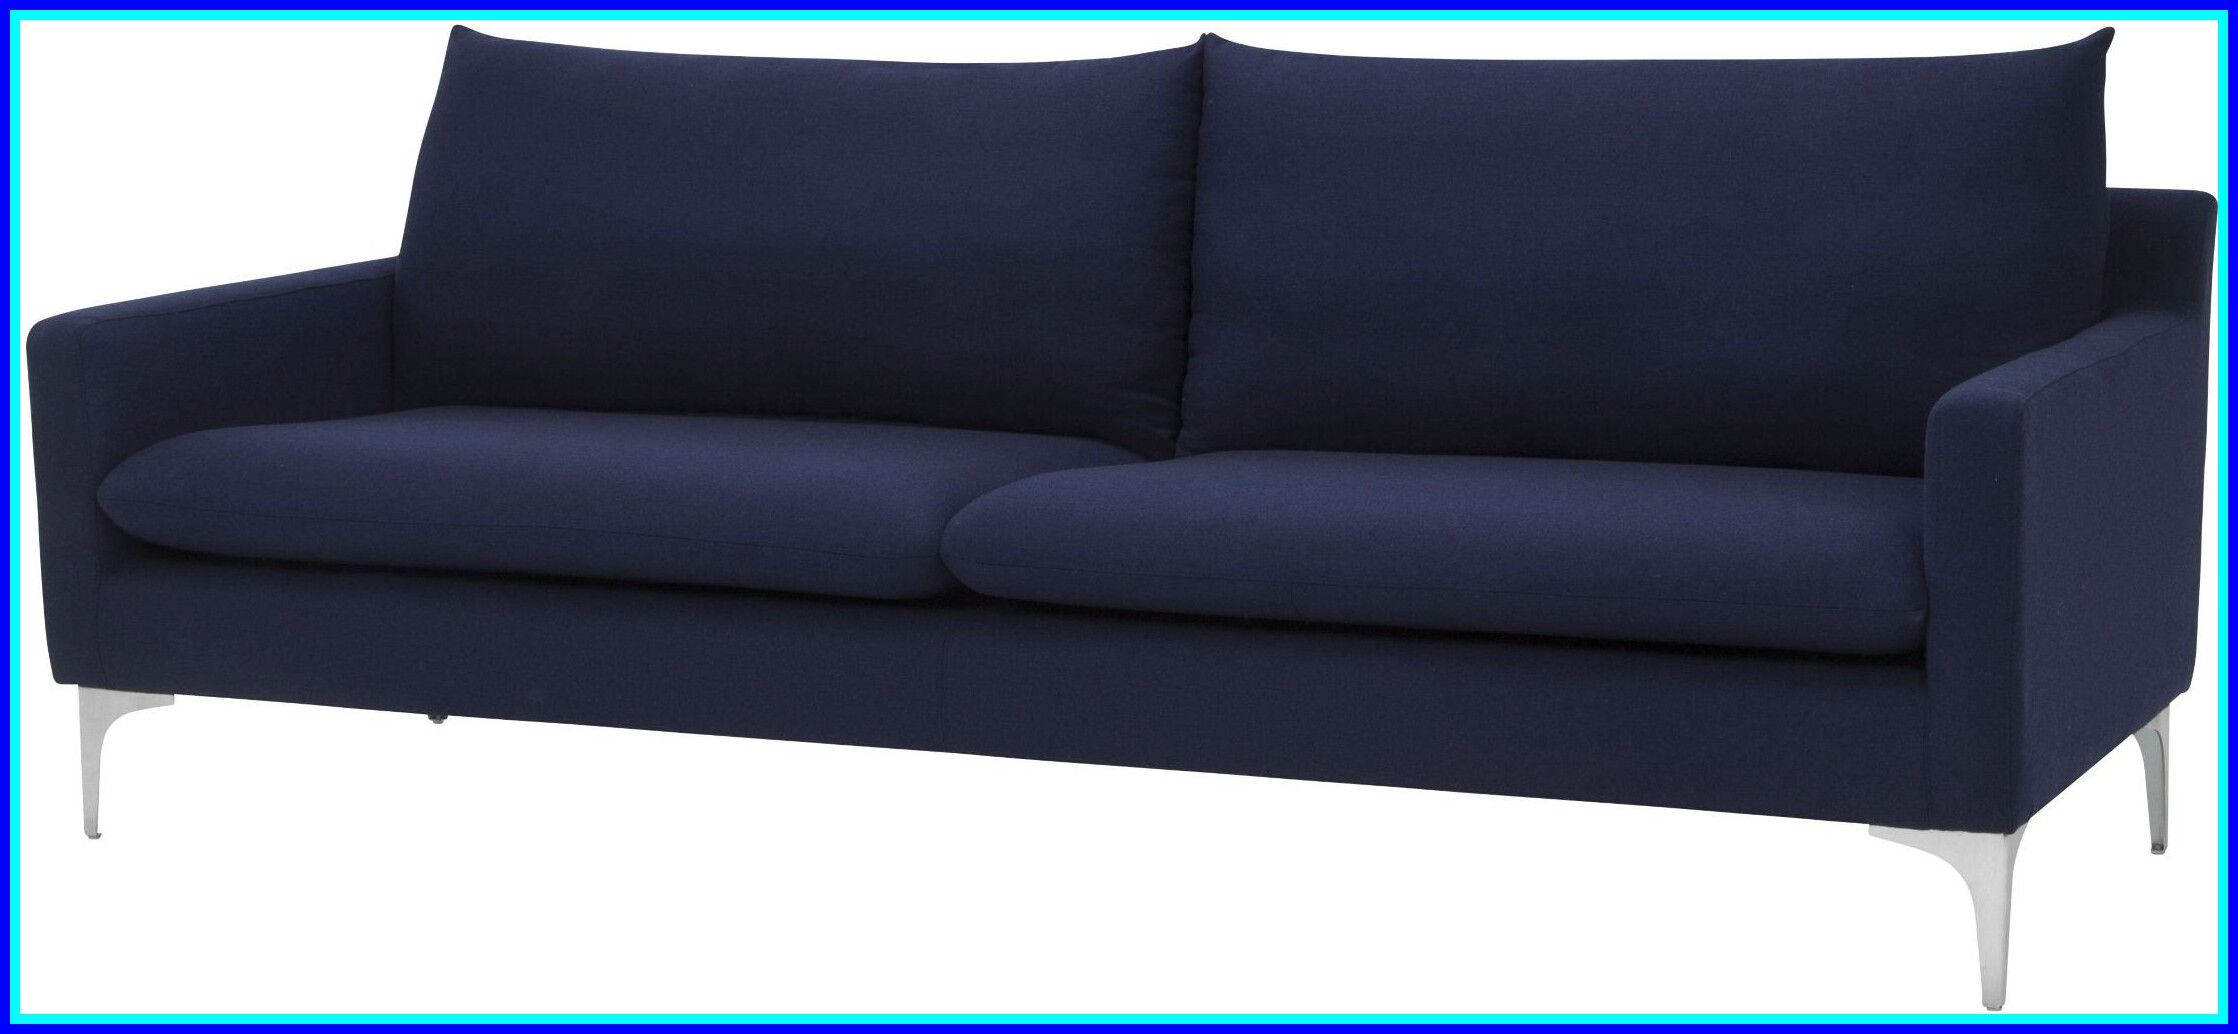 39 Reference Of Navy Blue Furniture Sofa In 2020 Blue Furniture Small Blue Sofa Navy Blue Sofa